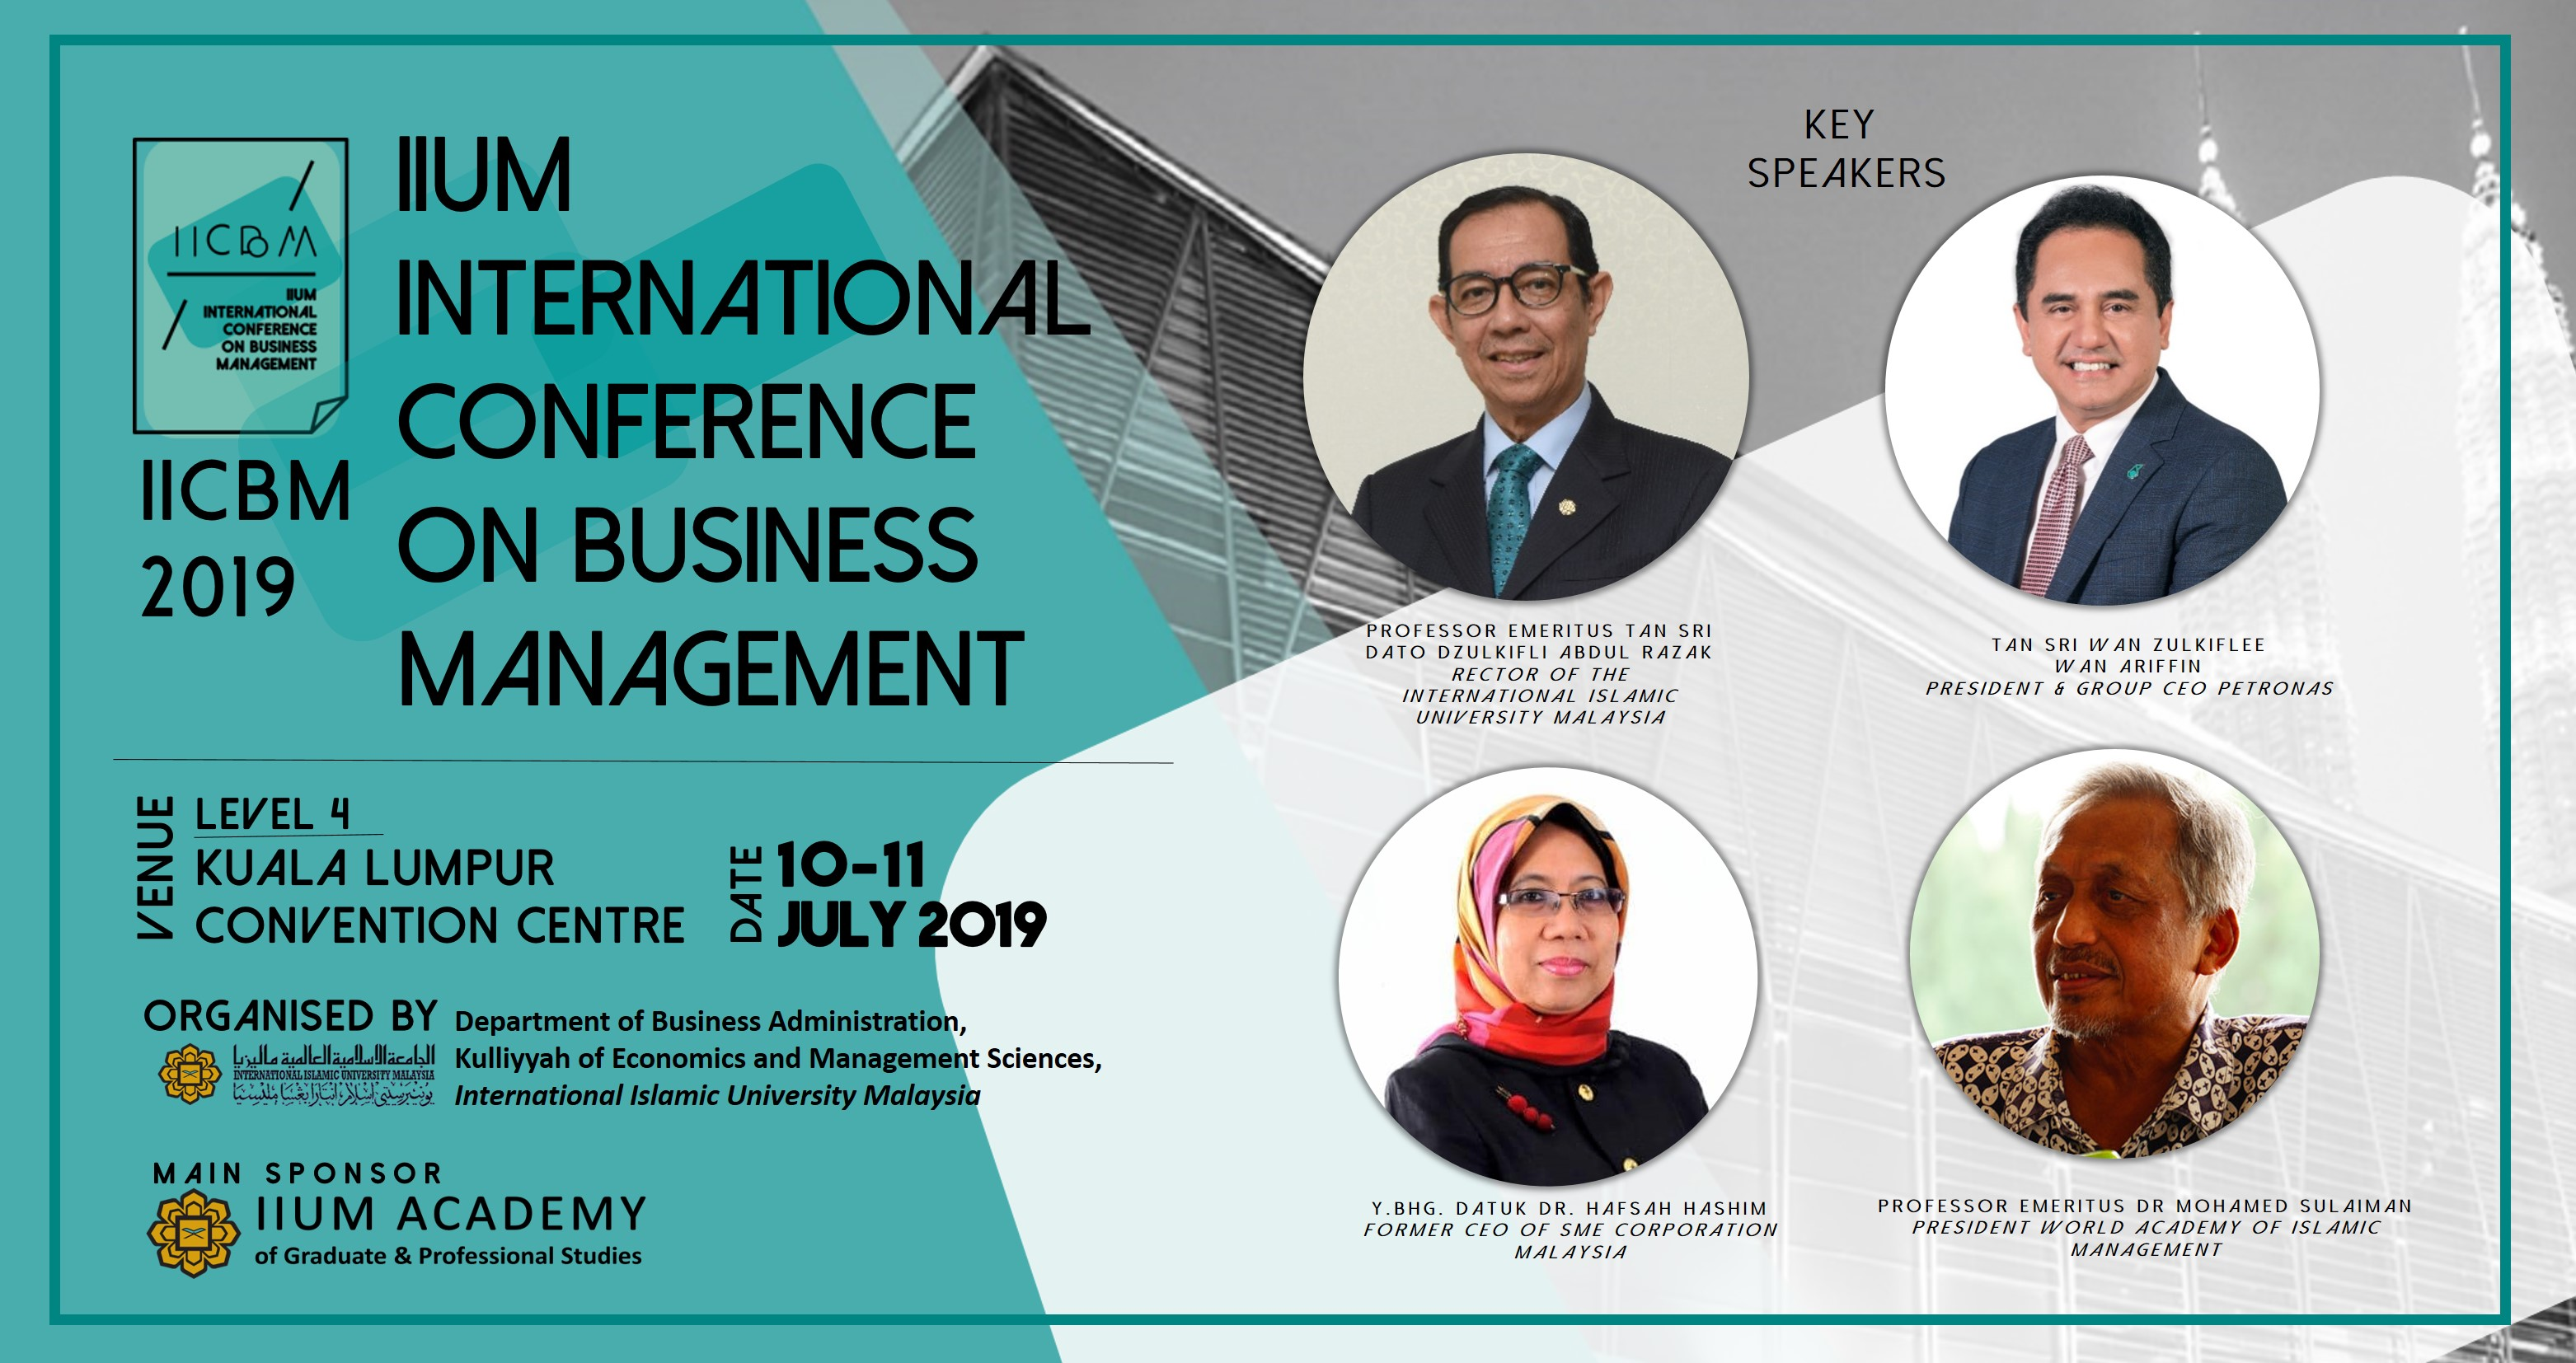 IIUM International Conference on Business Management (IICBM 2019)